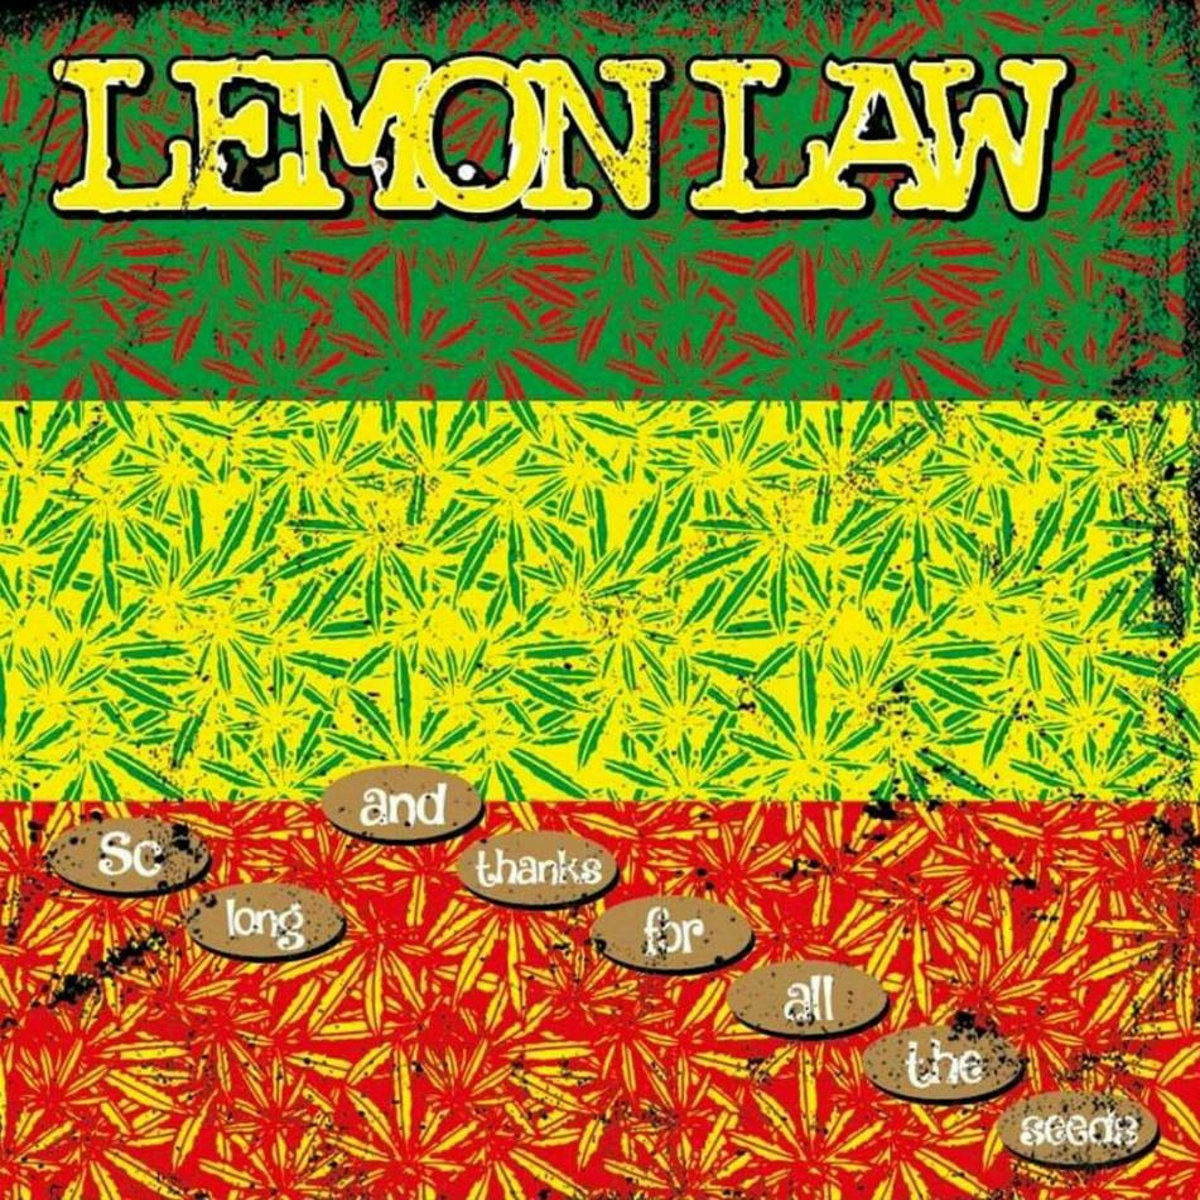 From So Long And Thanks For All The Seeds By Lemon Law